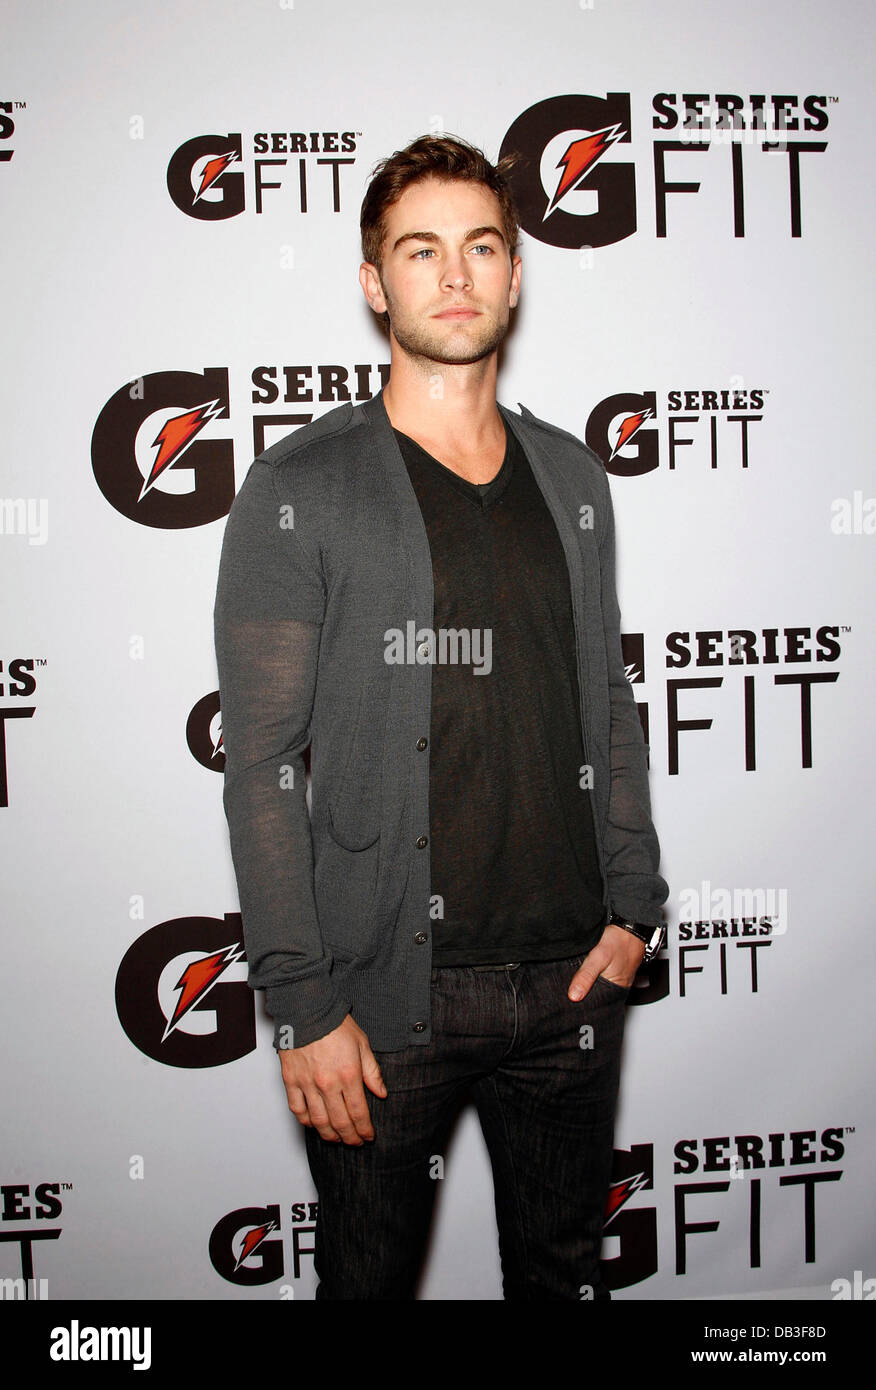 e57b97b74667 Chace Crawford The Gatorade G Series Fit Launch Event held at the SLS Hotel  Los Angeles